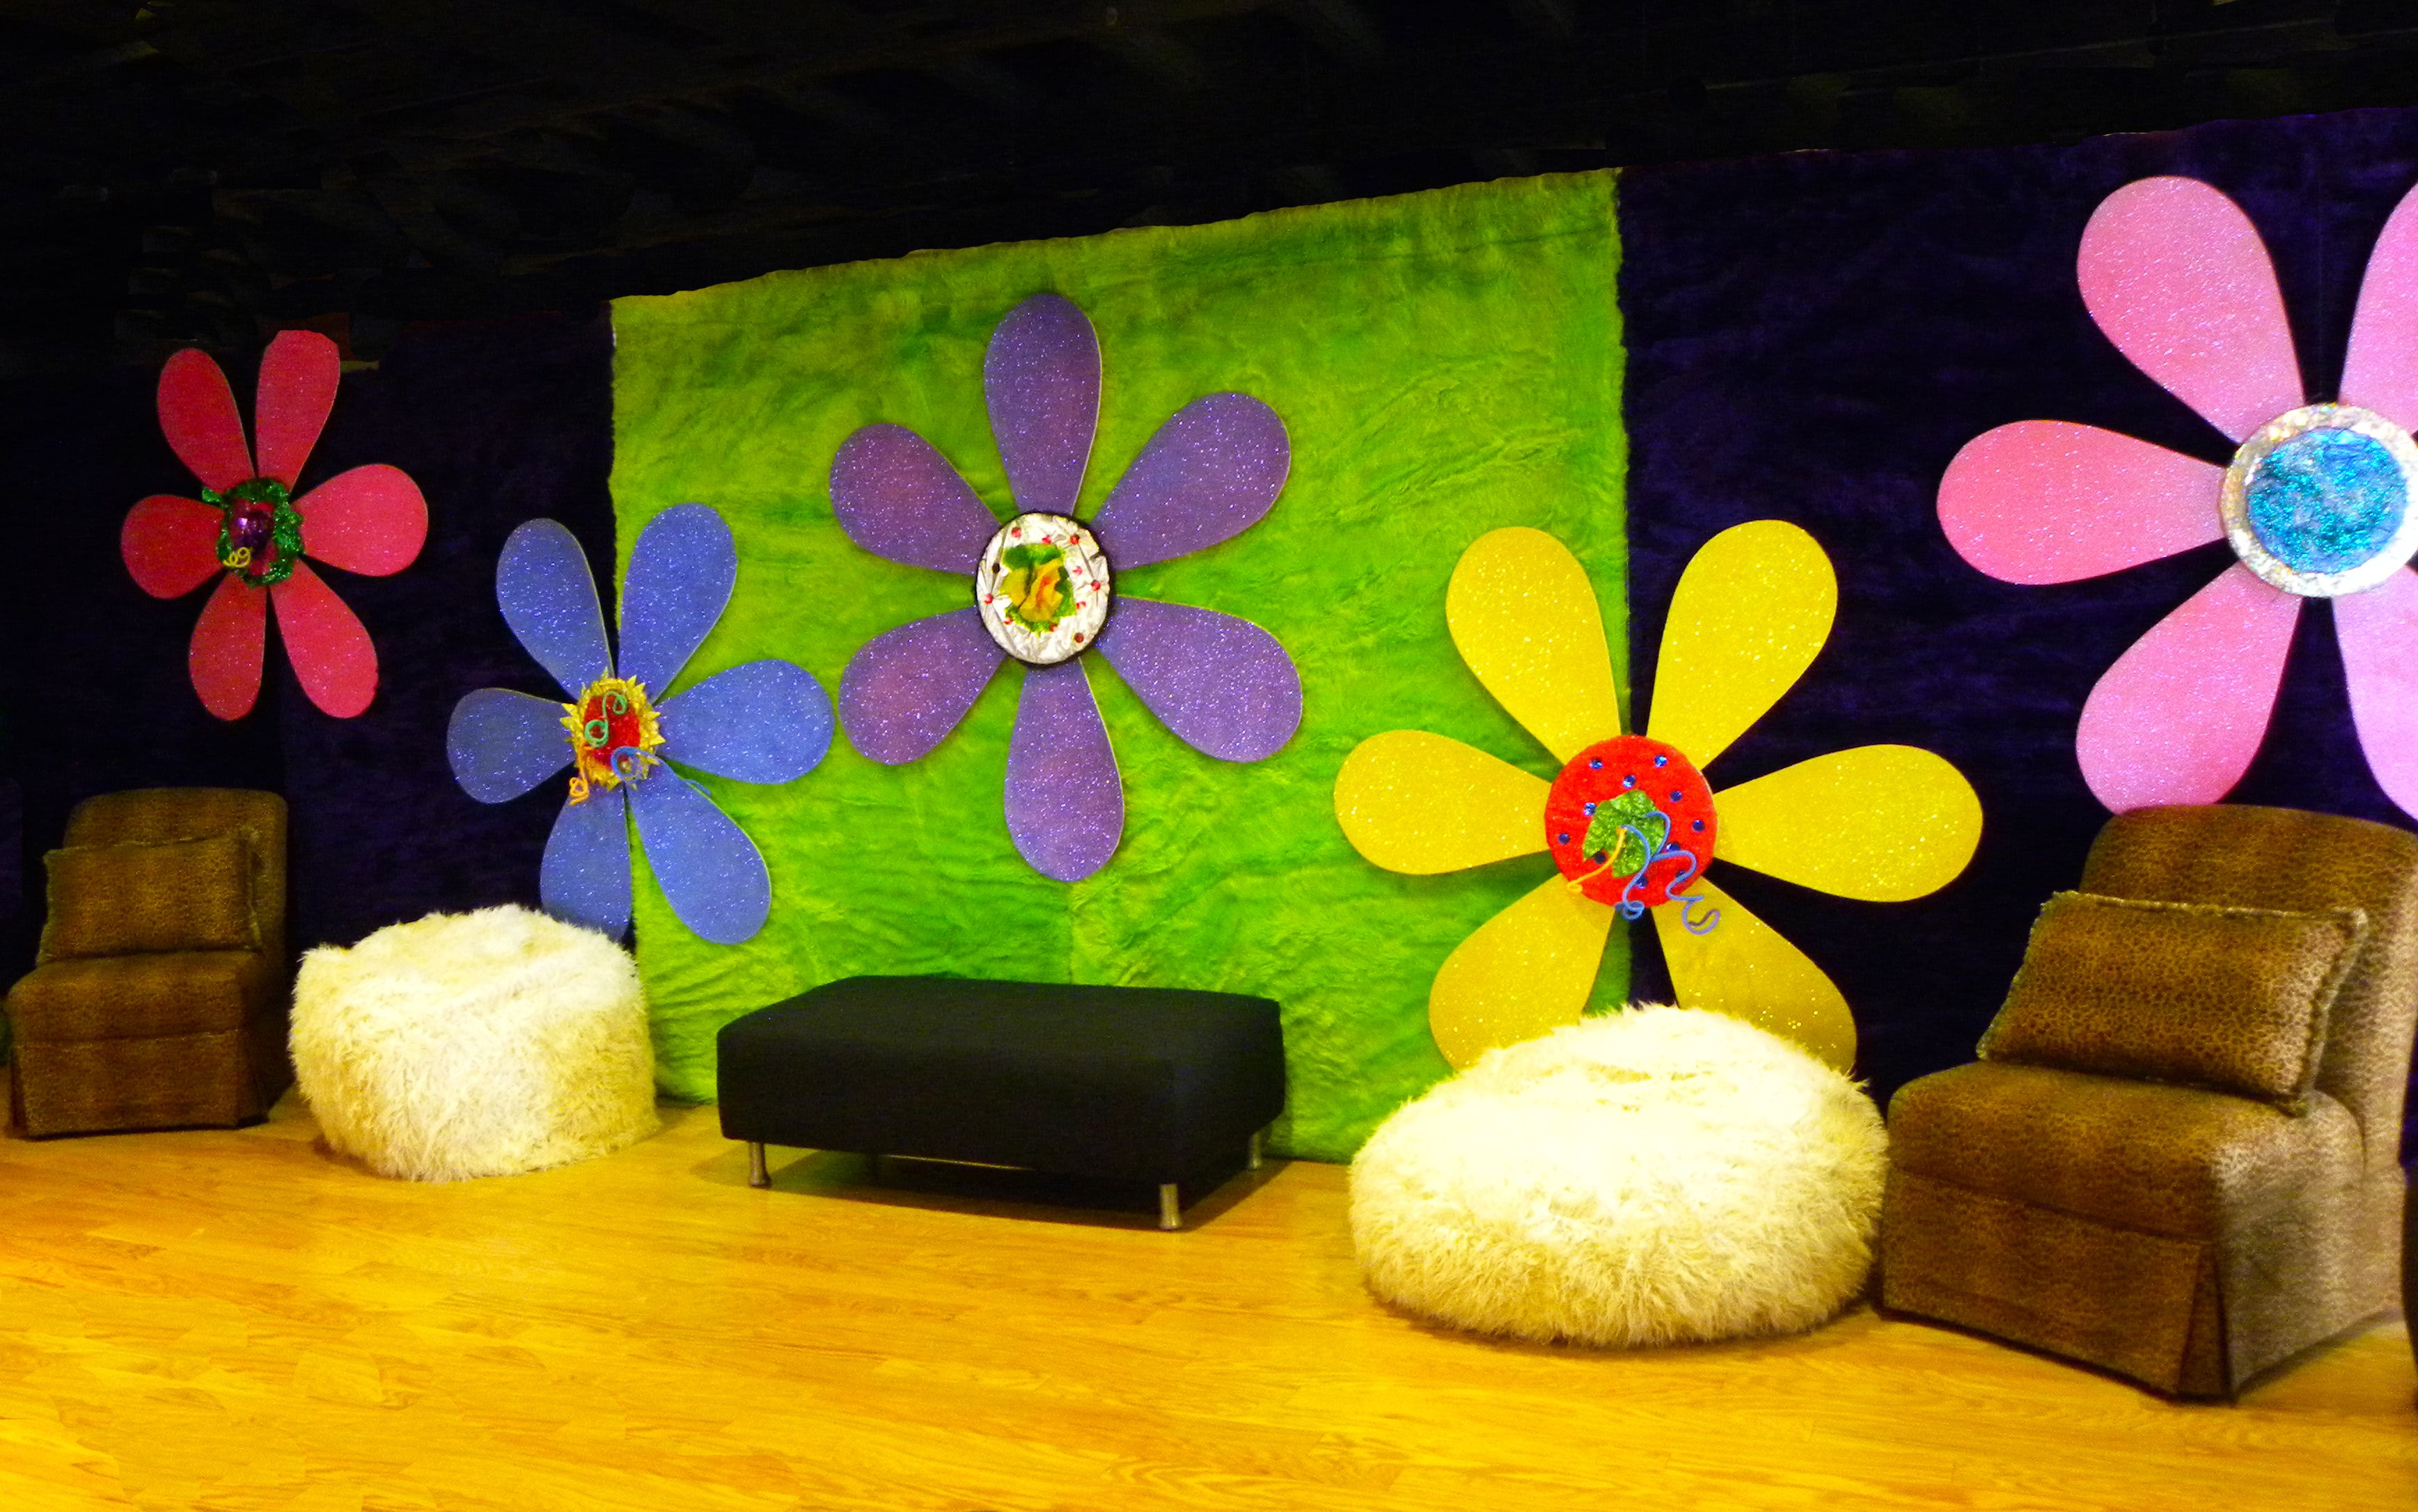 Groovy flower backdrop with retro seating 70 39 s party for 60s party decoration